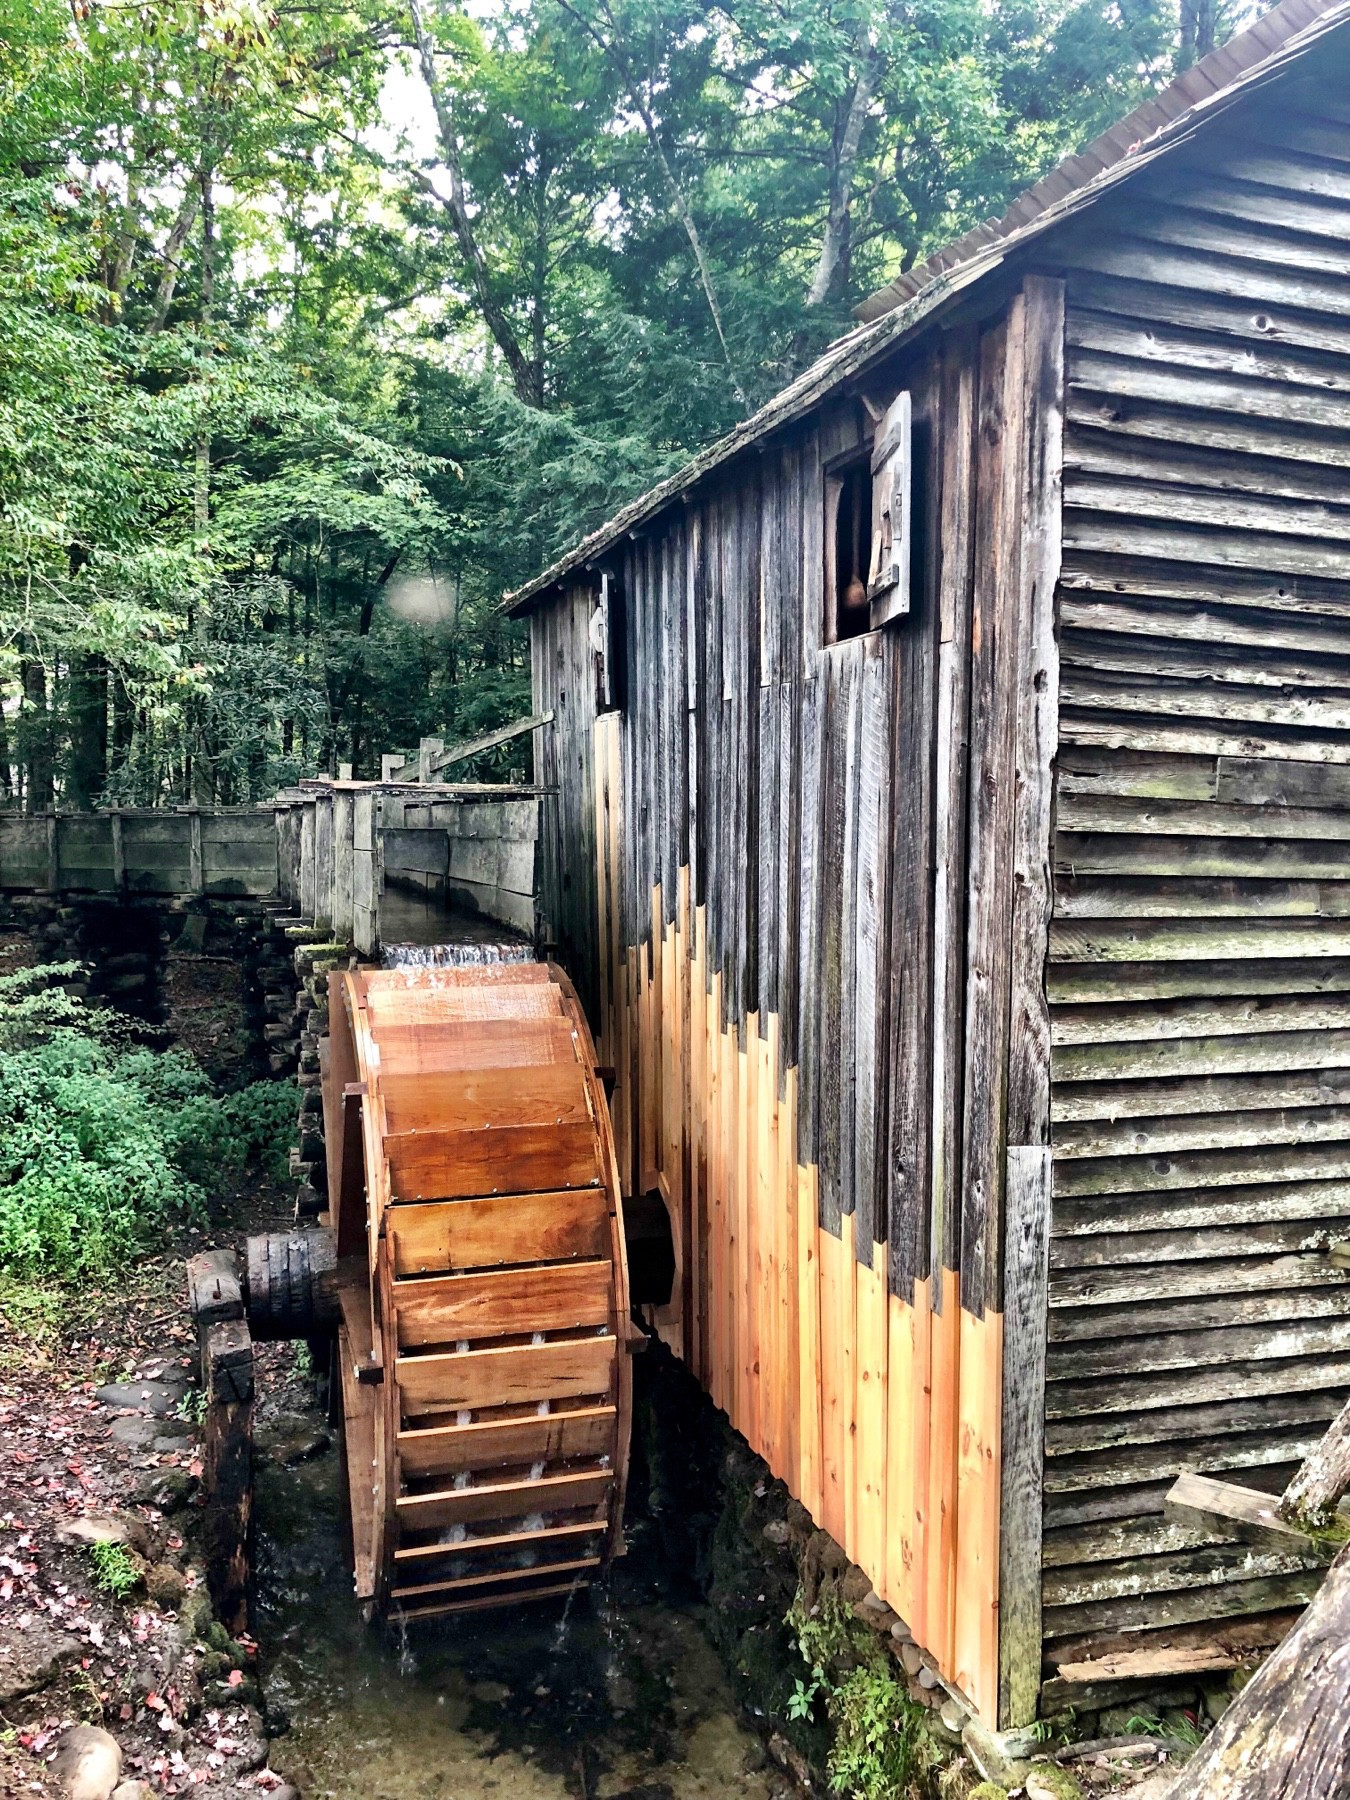 A wooden water wheel attached to a mill in Tennessee.